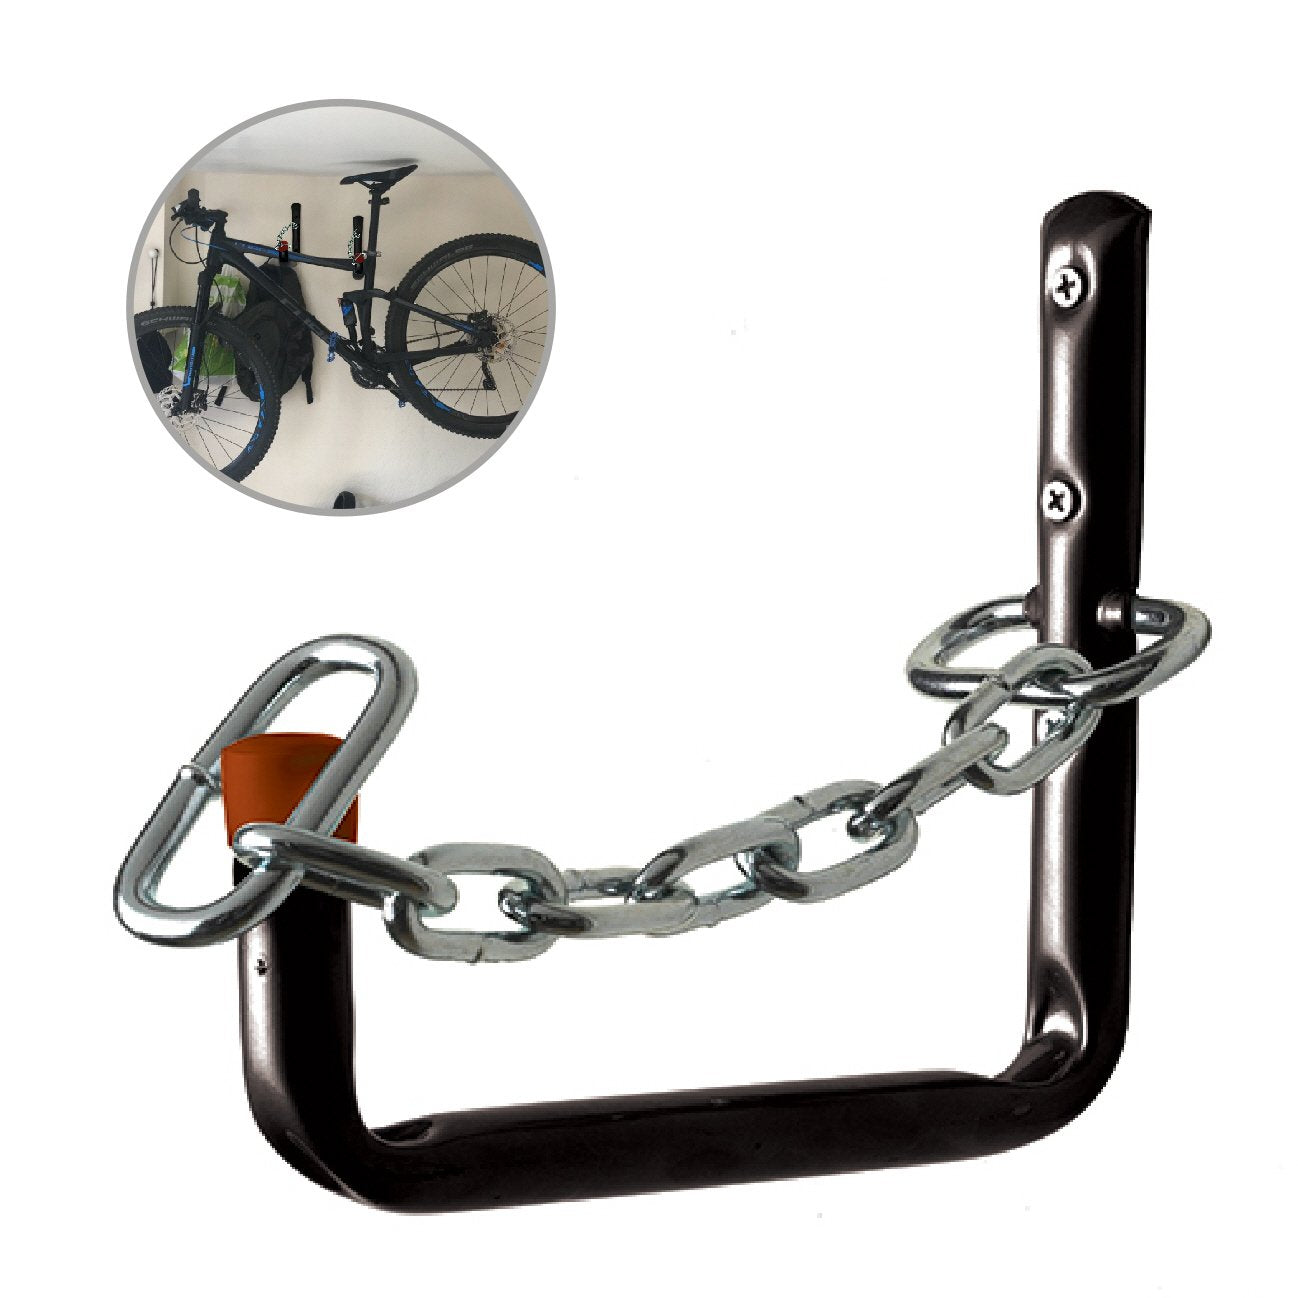 Lockable 210mm Storage Hook, Wall Mounted for Ladders & Bikes